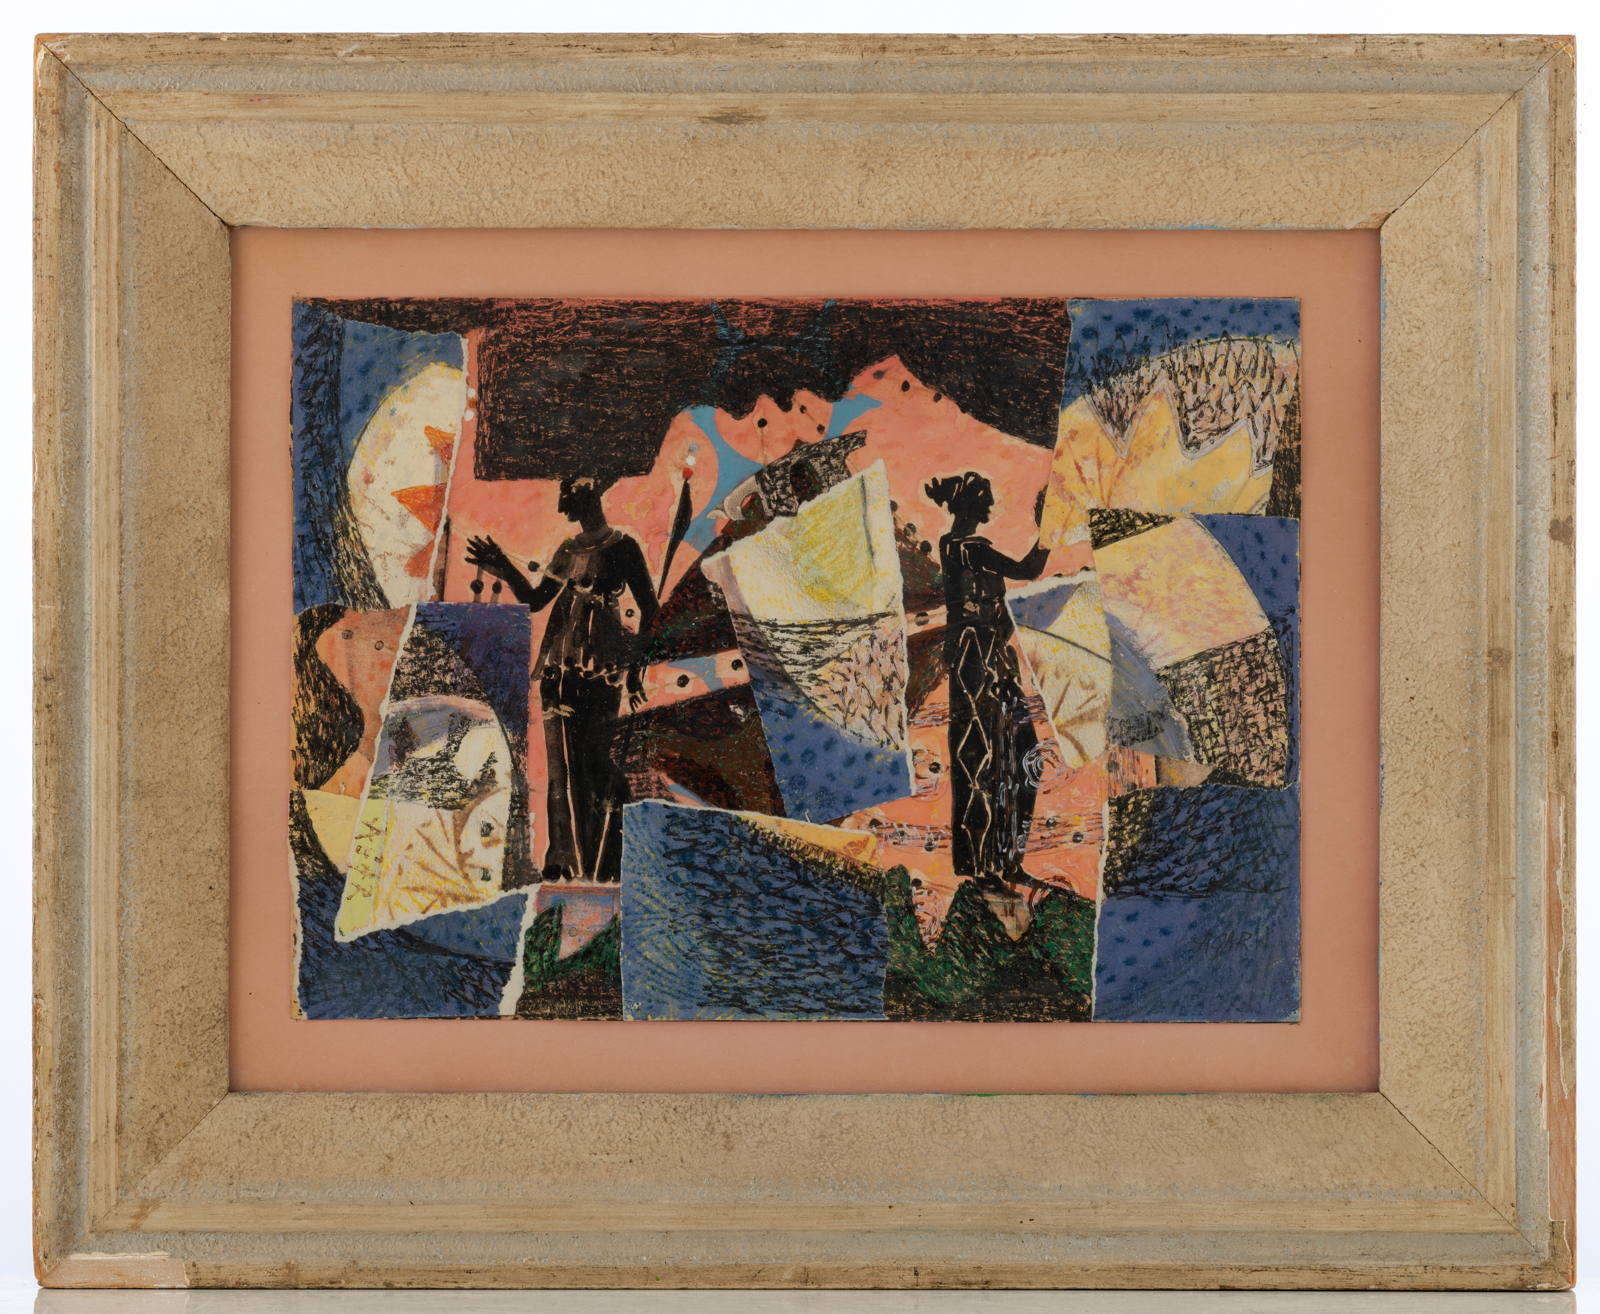 Lot 959 - Agar E., figures in a landscape, dated 1944, collage, watercolour and gouache on paper, 25 x 35 cm I